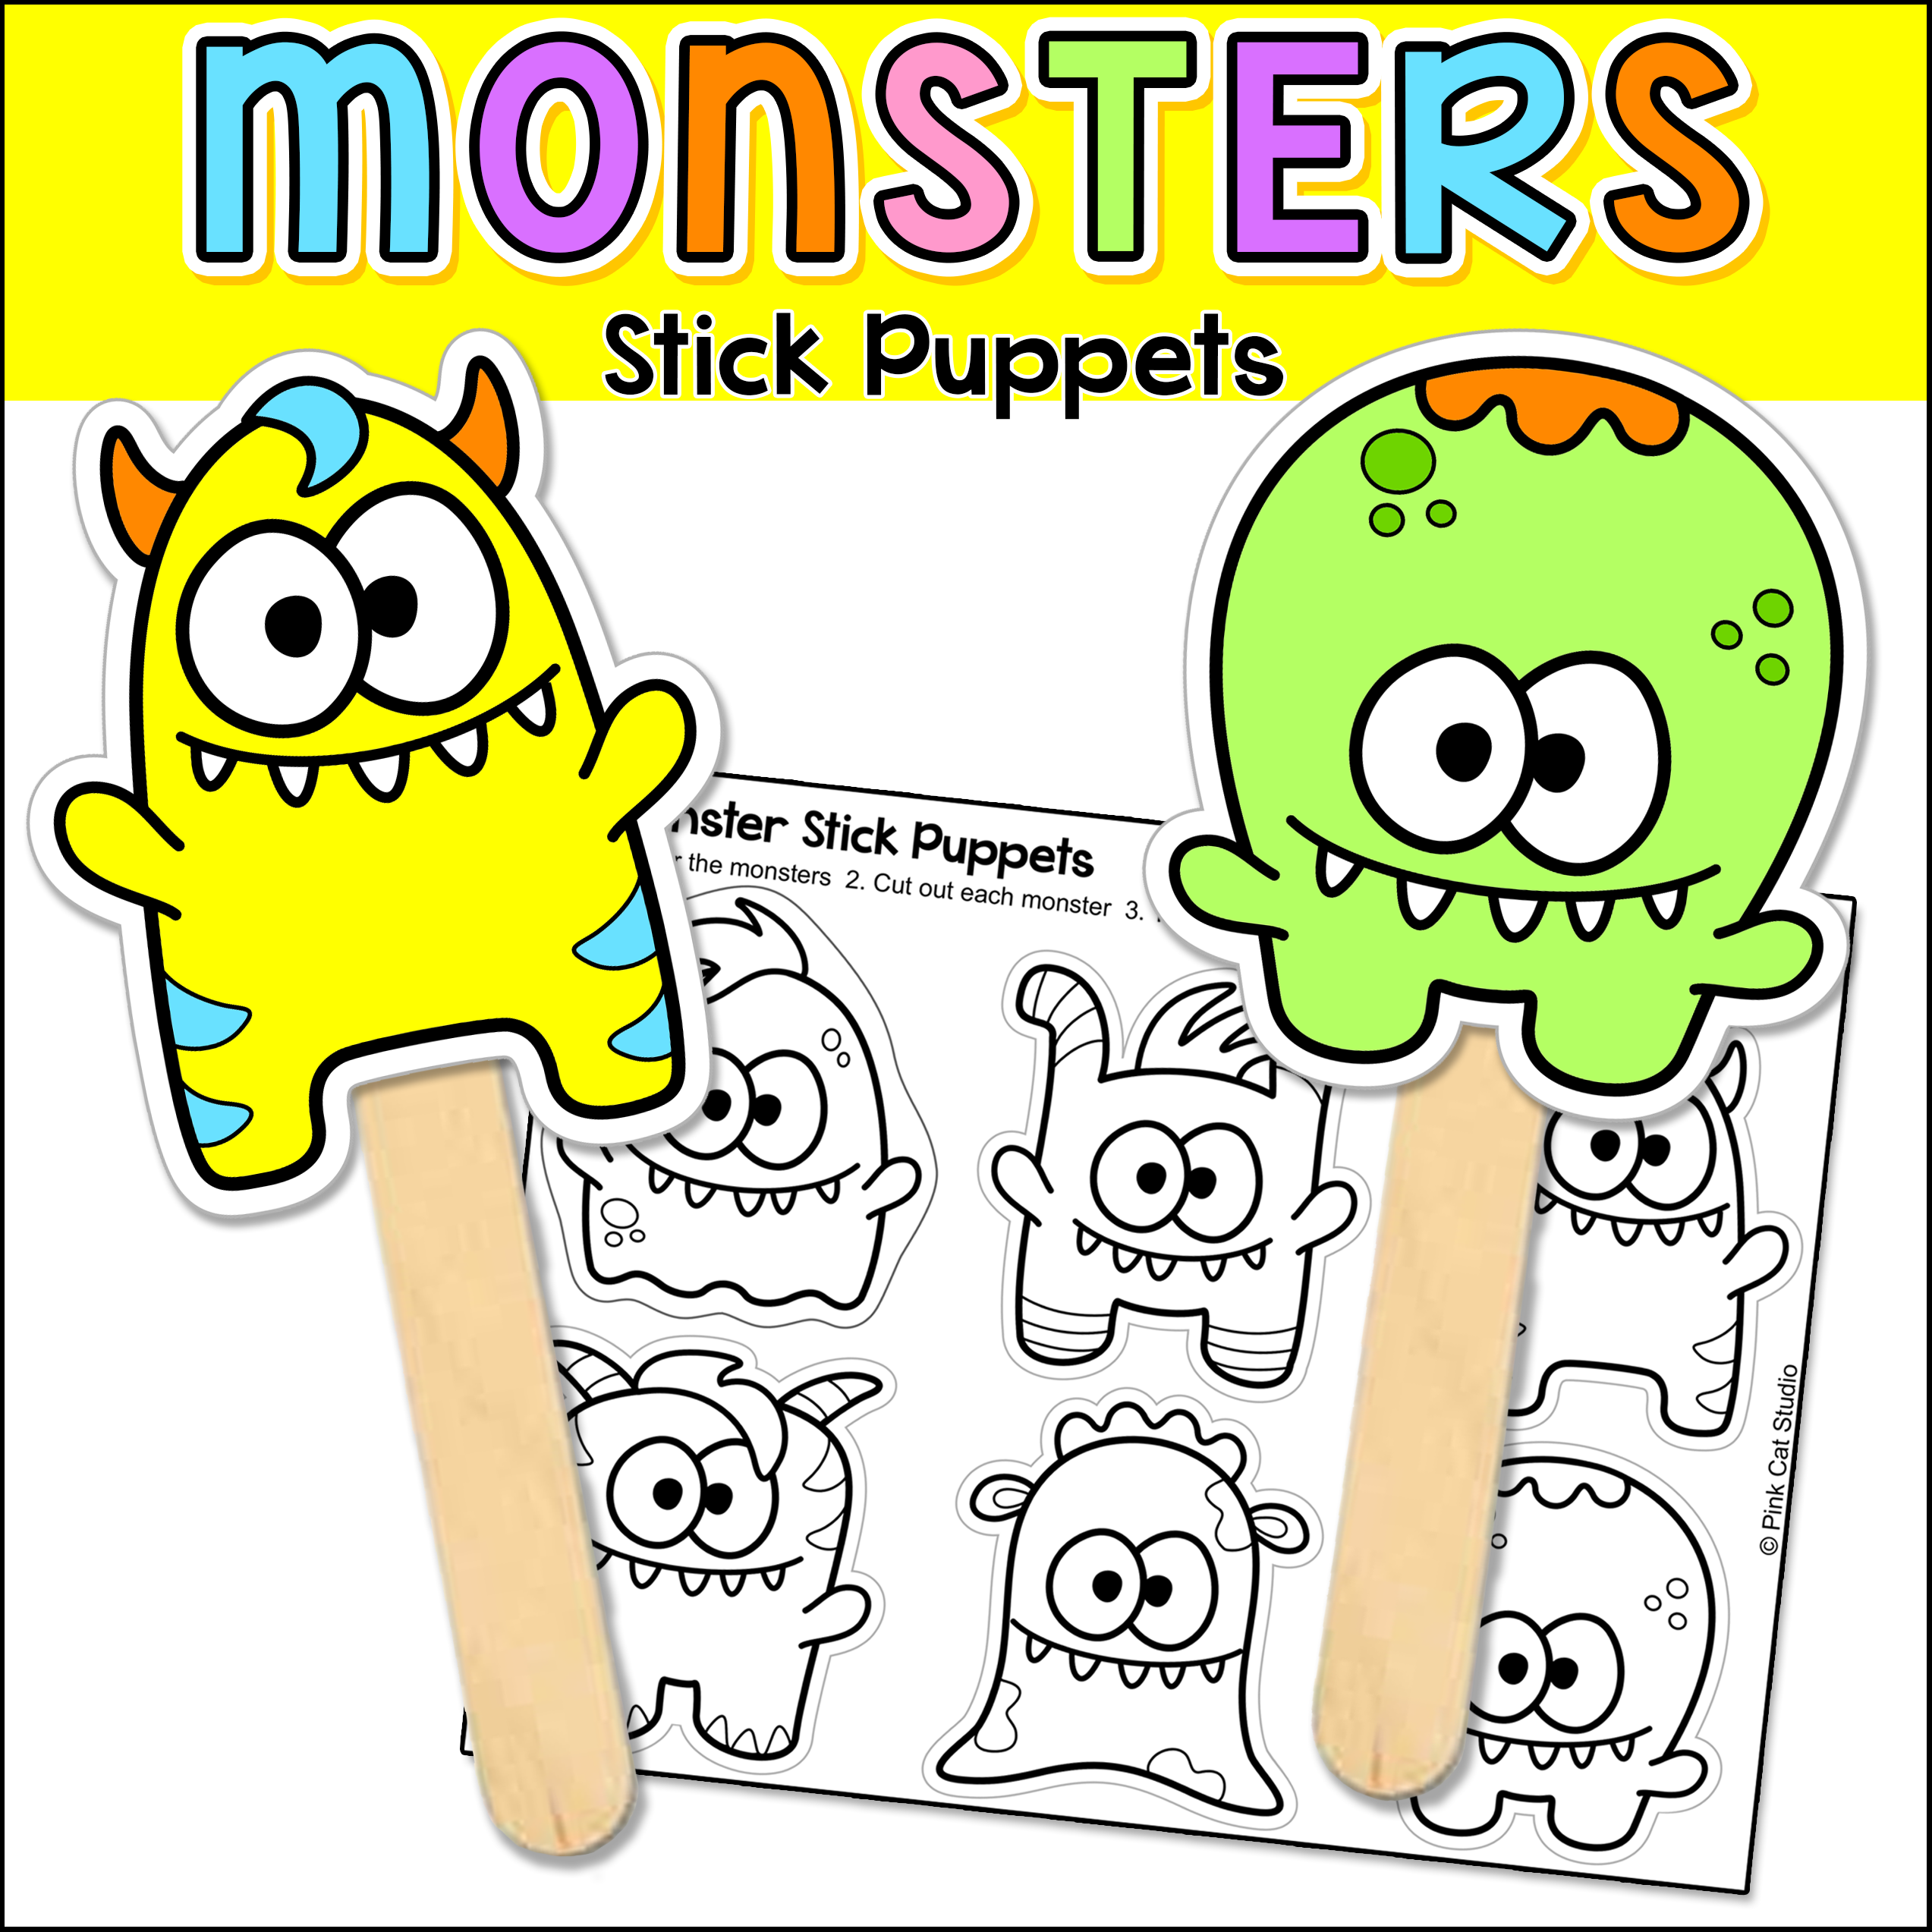 Monsters Stick Puppets Coloring Page Owl writing